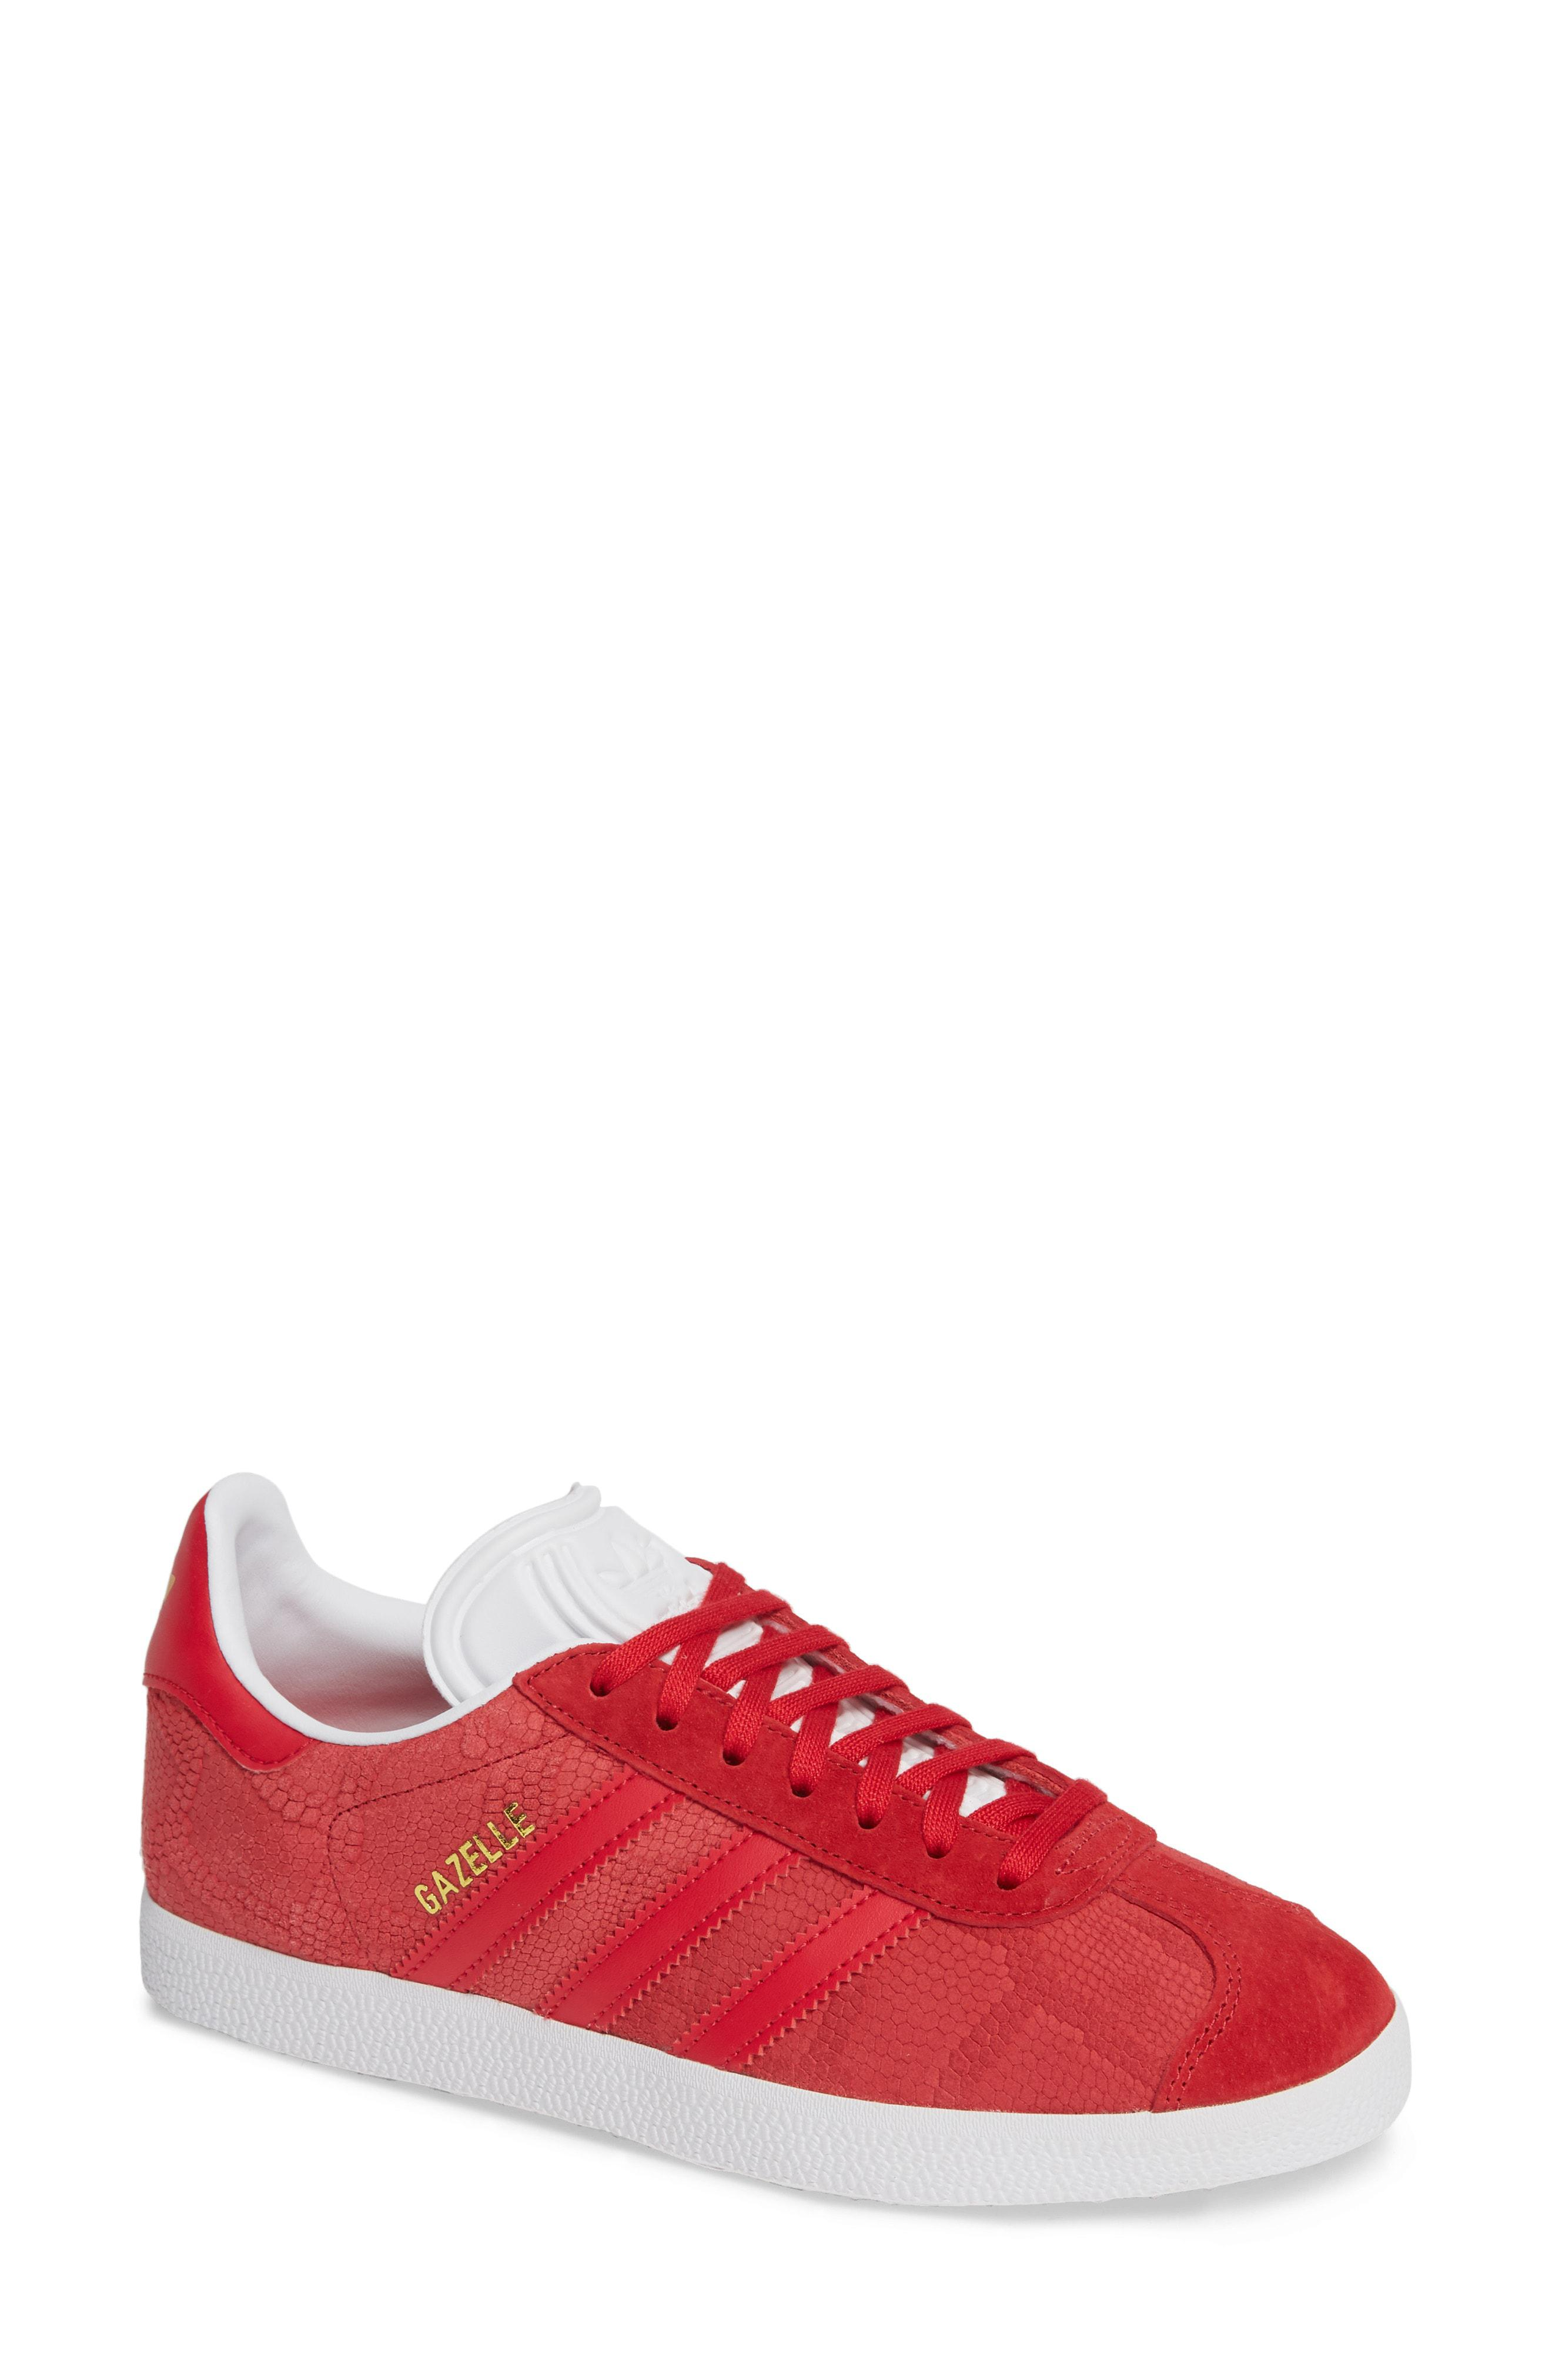 new products 9c485 2bf9f adidas. Women s Red Gazelle Sneaker